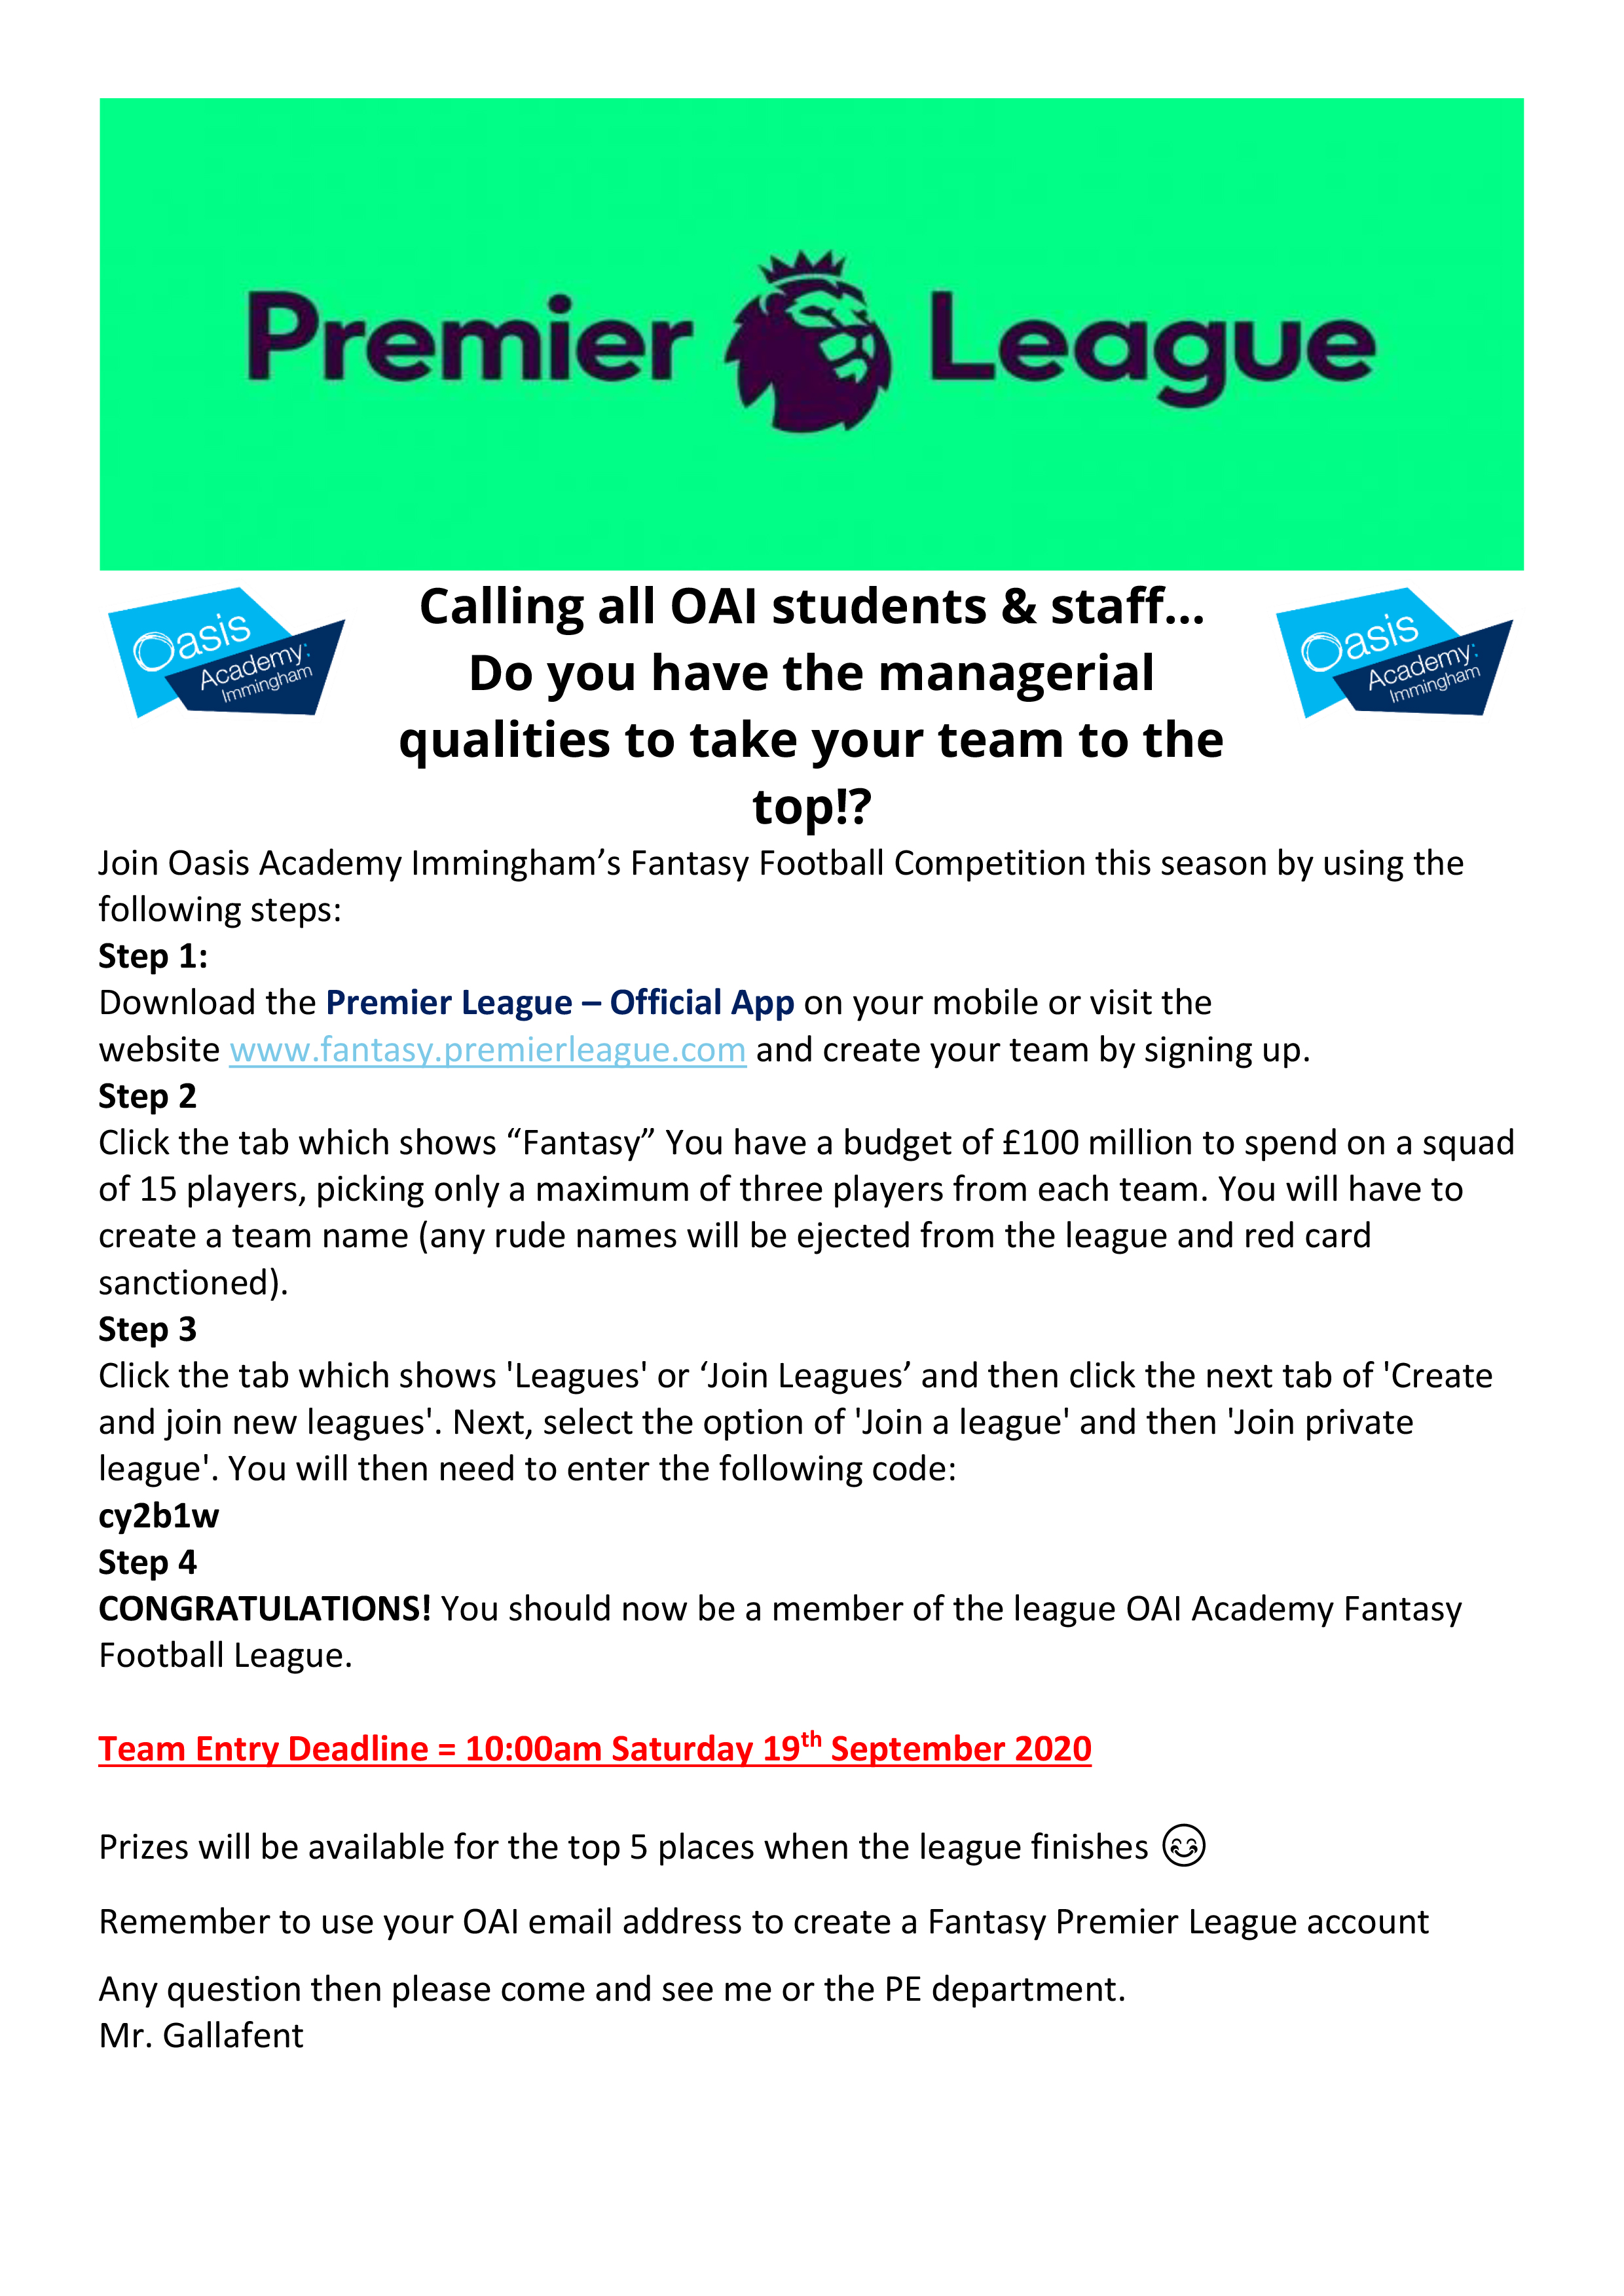 Calling all OAI students & staff… Do you have the managerial qualities to take your team to the top!?